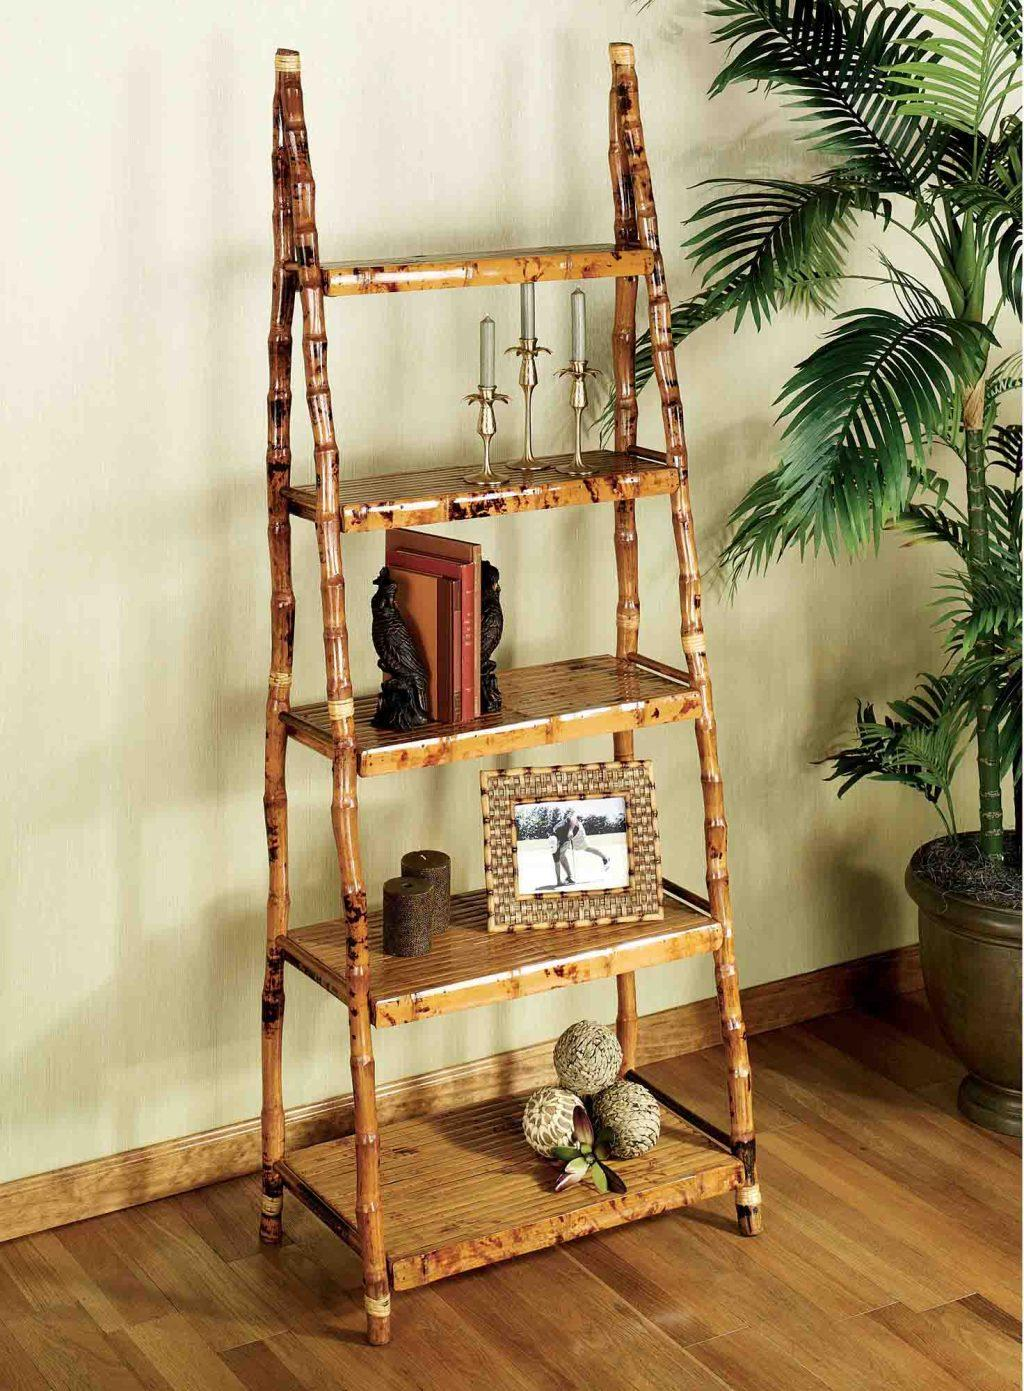 Bamboo Crafts: 60 models, photos and step by step DIY 12